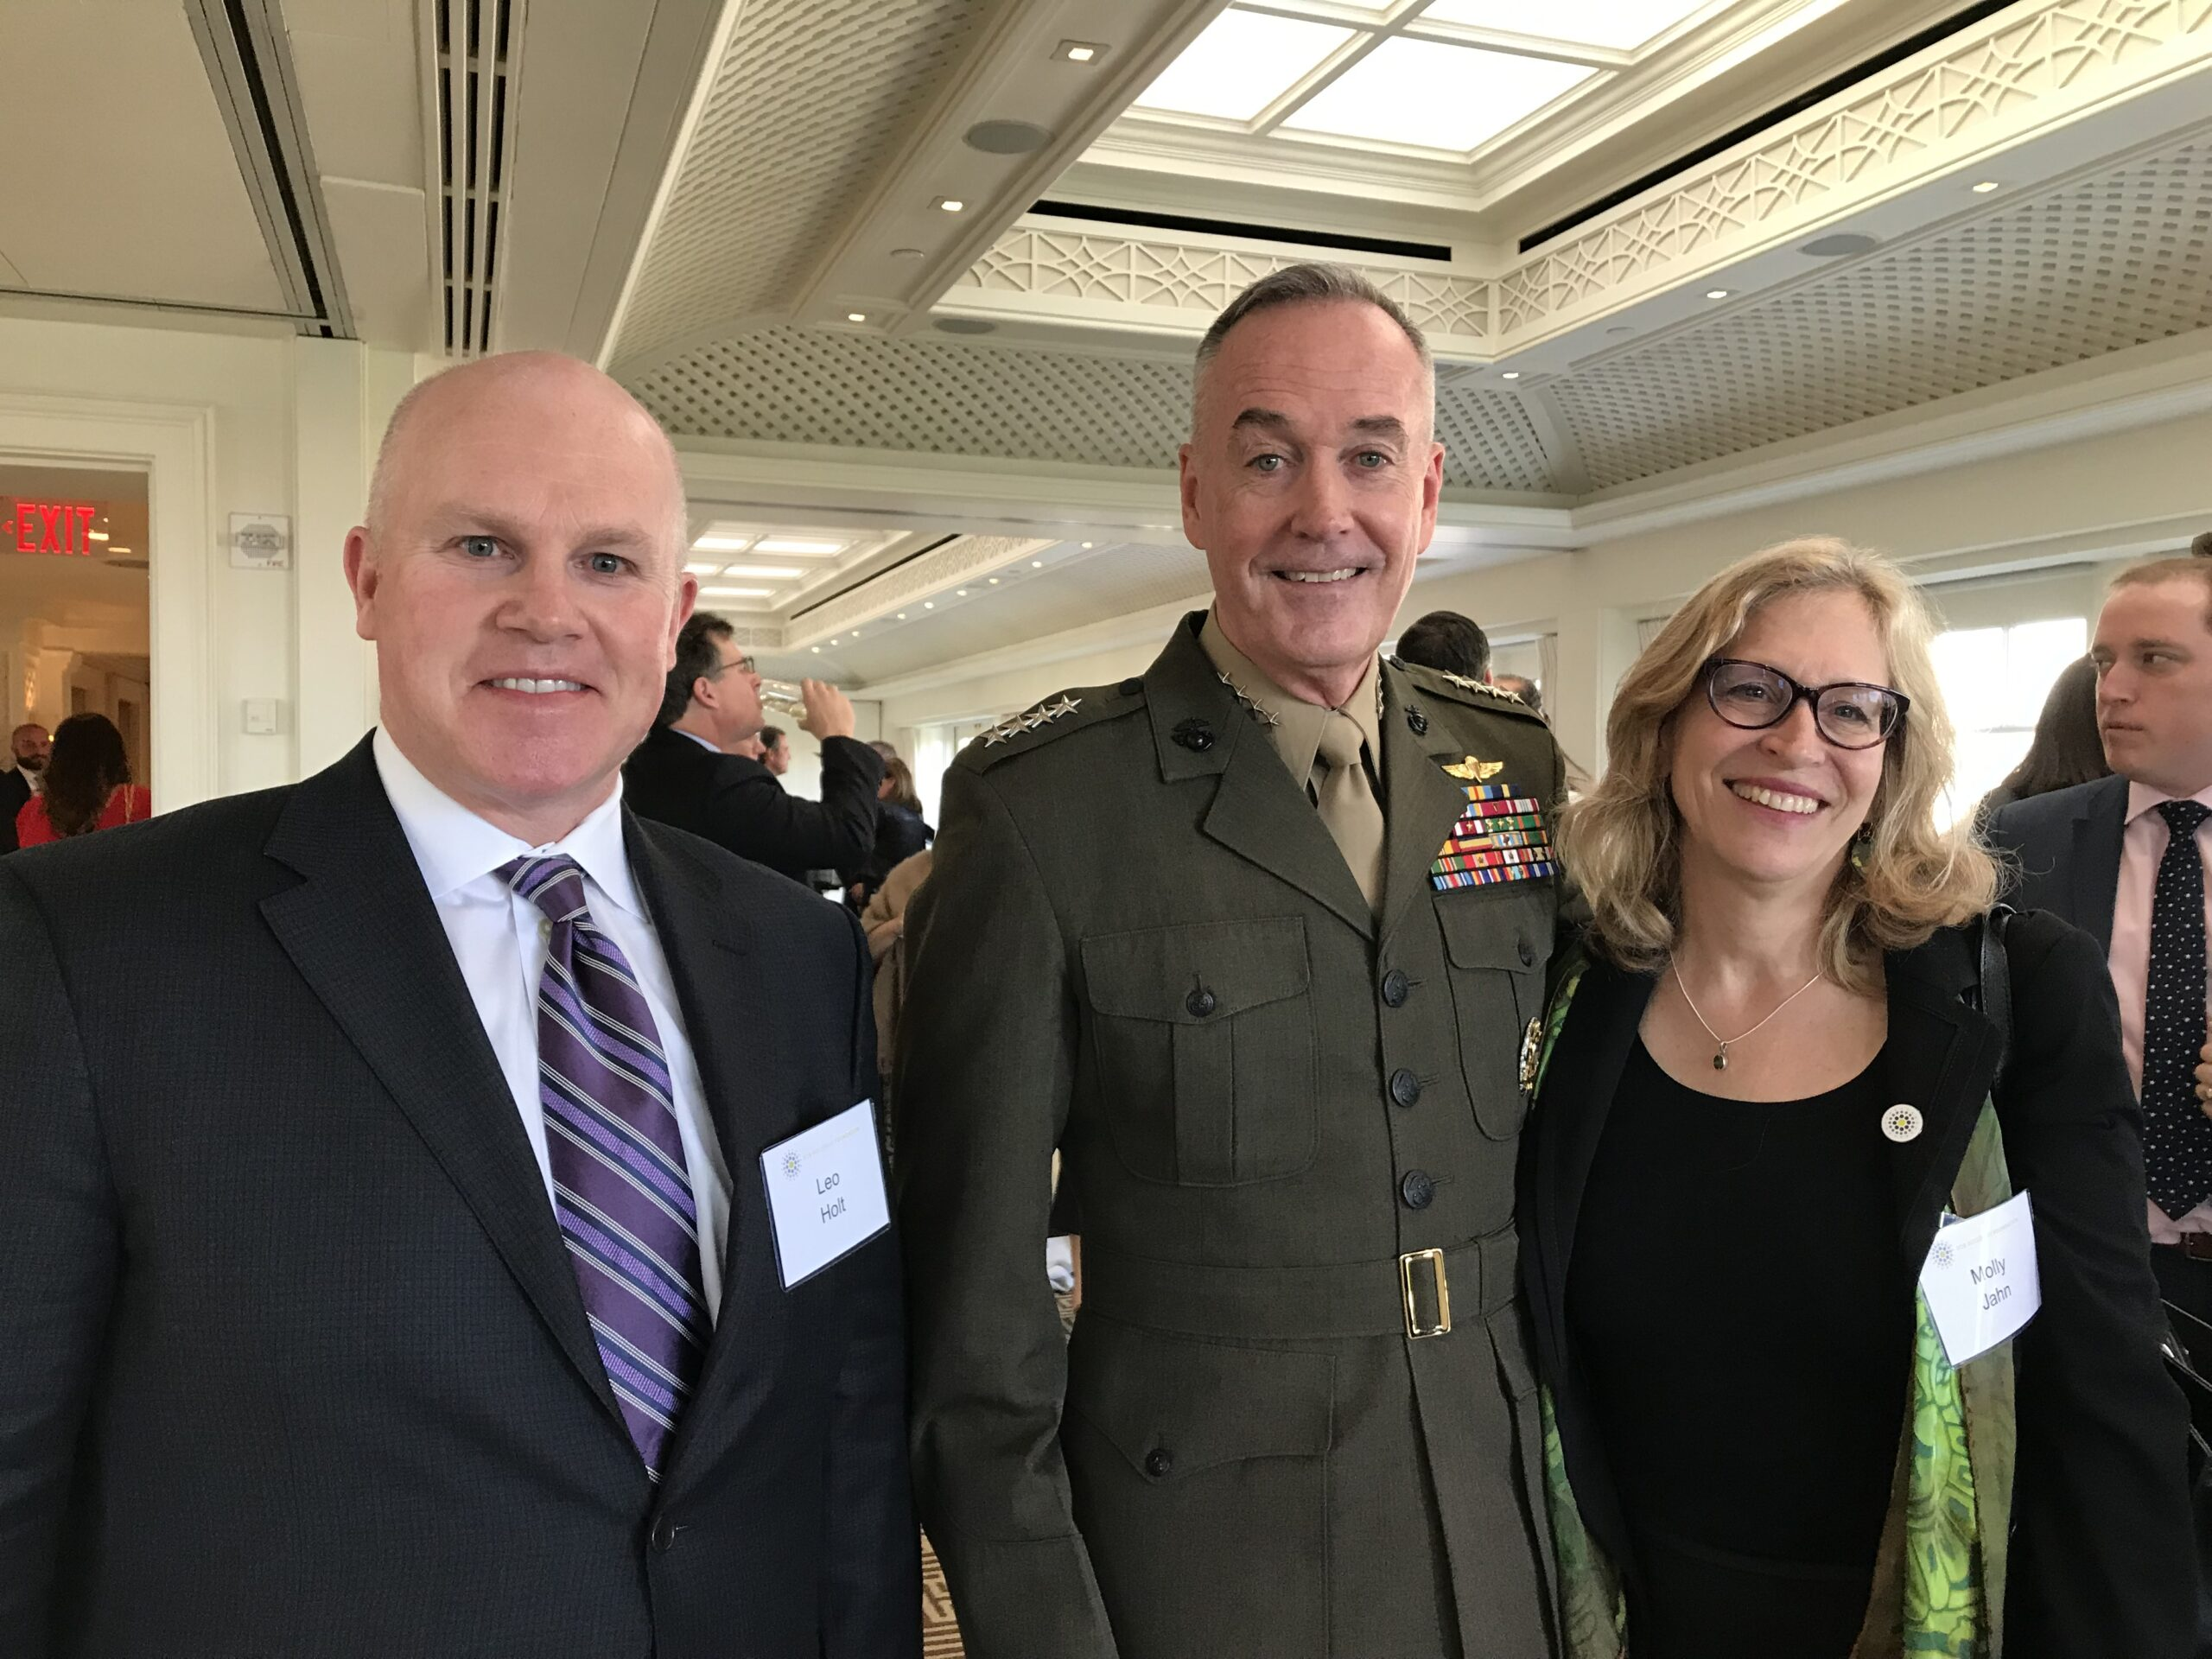 Molly Jahn, General Dunford, and Leo Holt